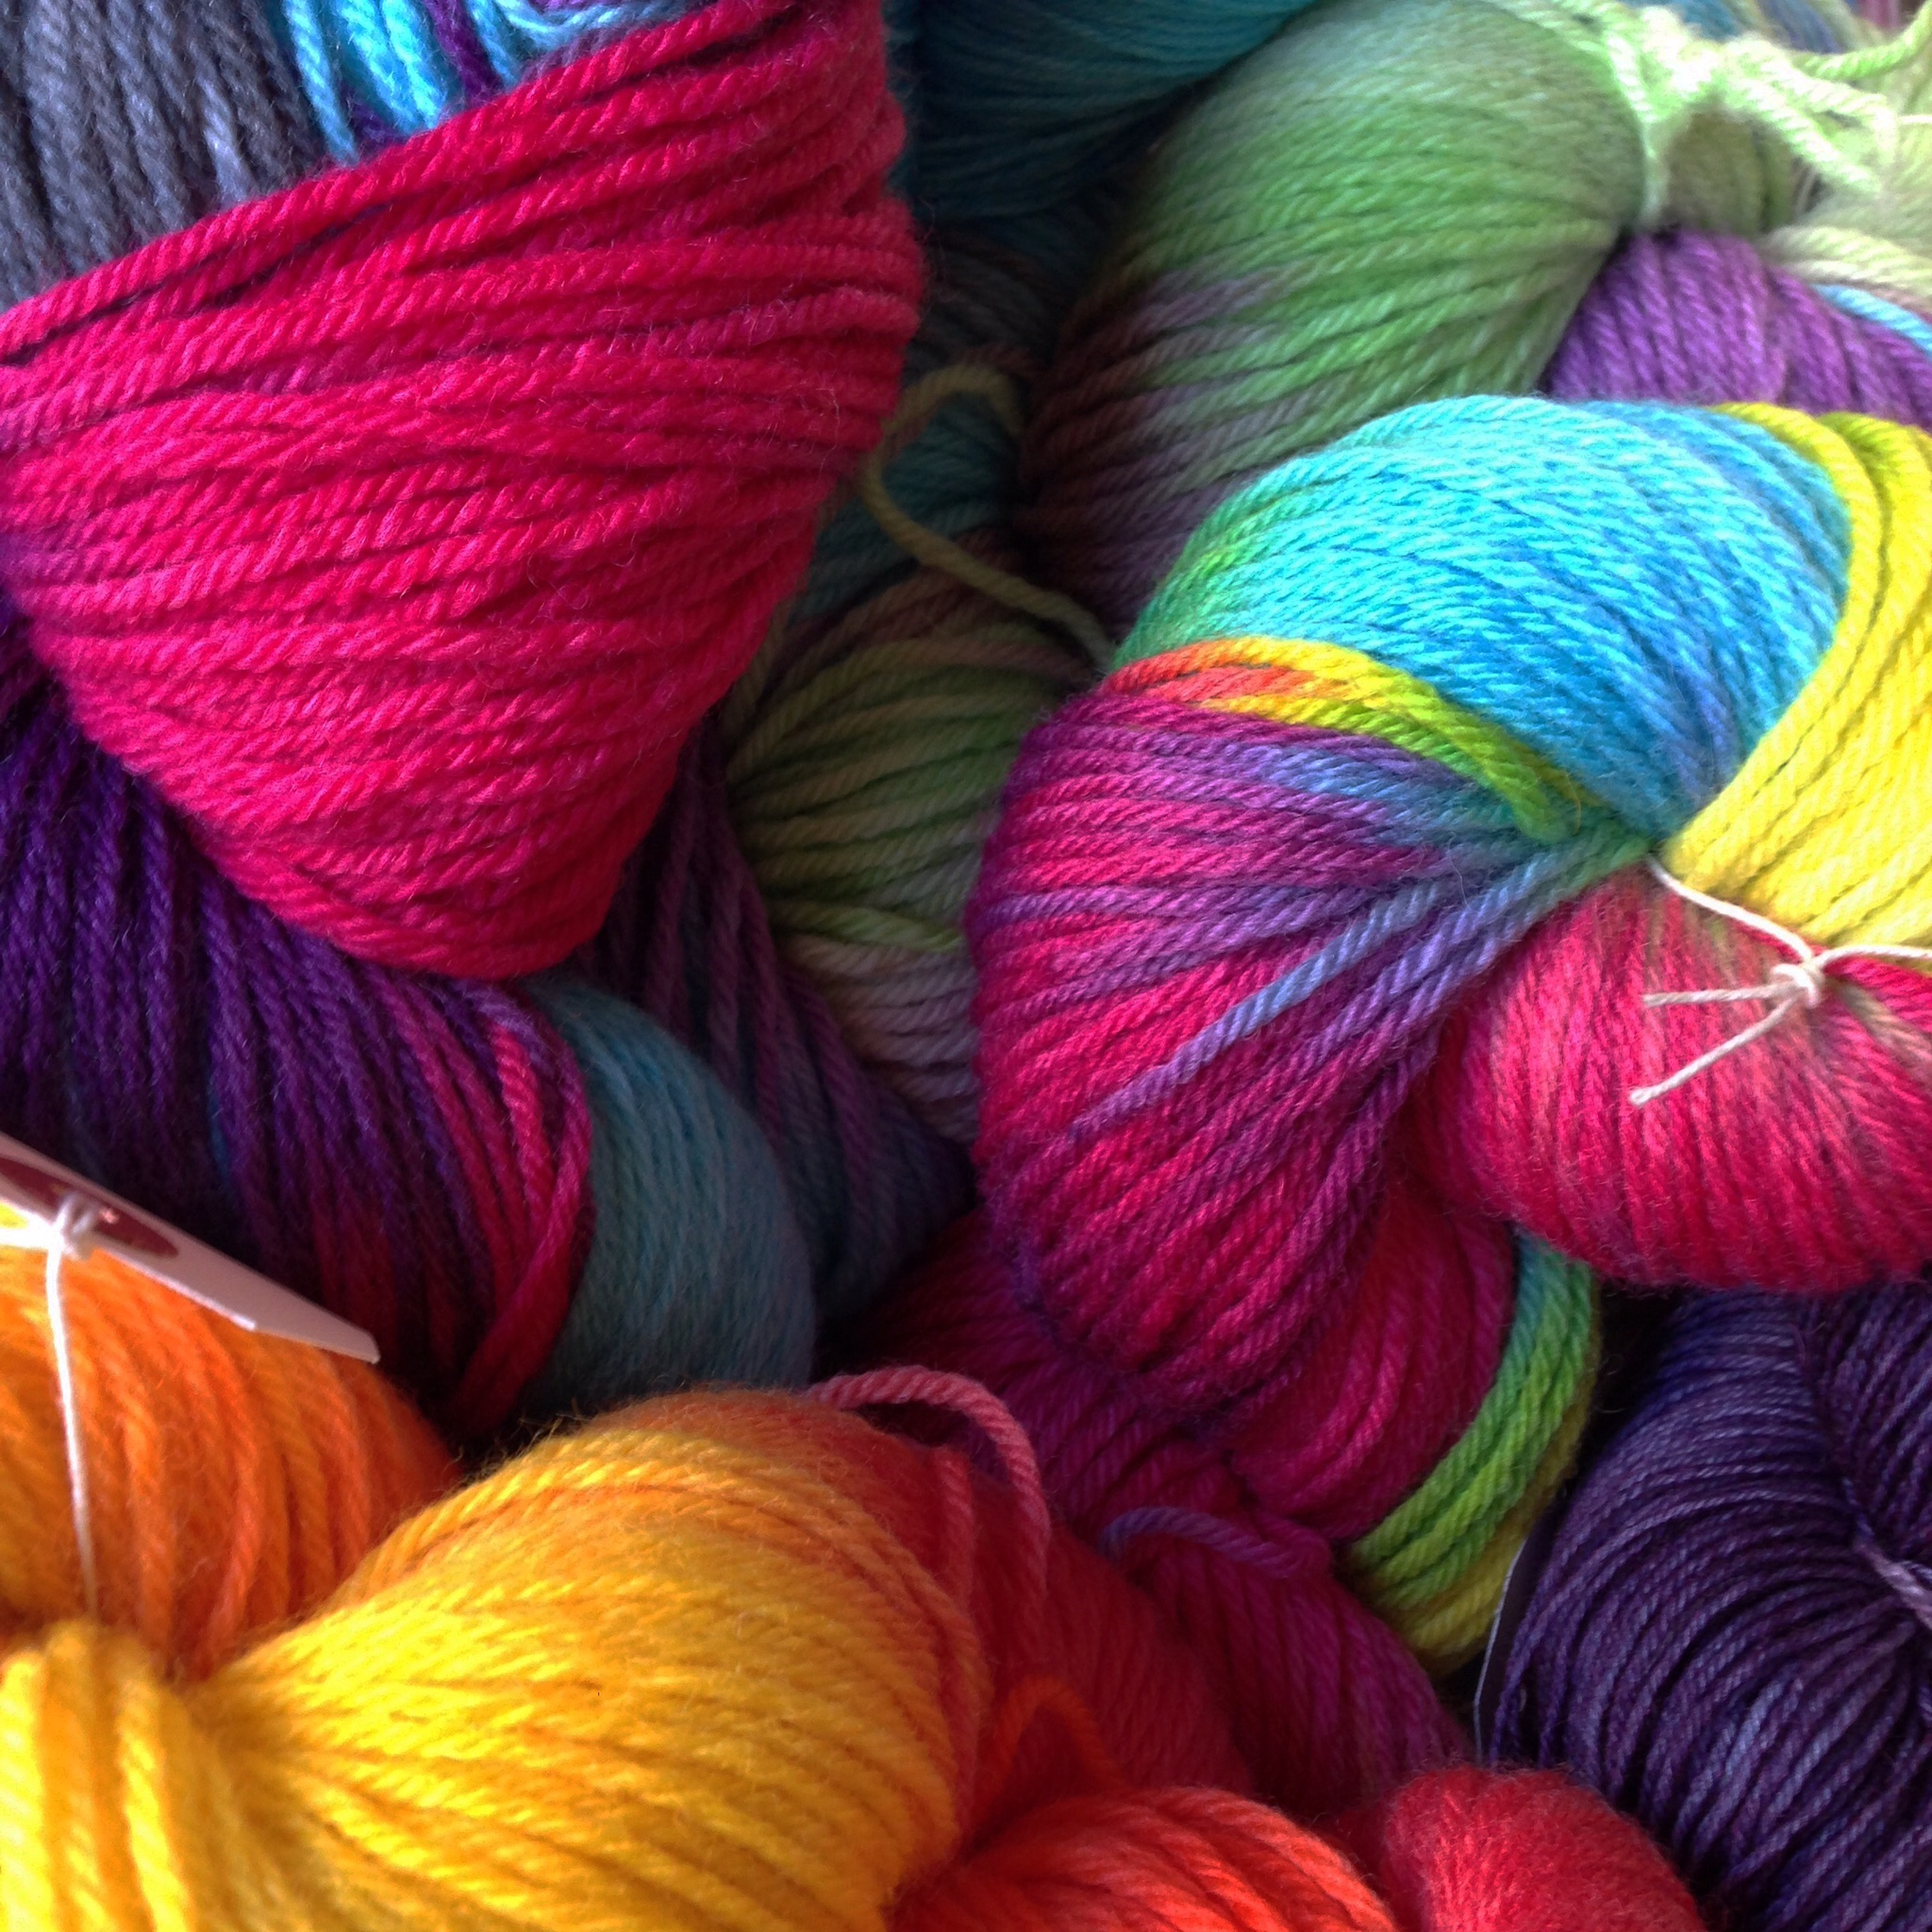 Yarnspiration 2014